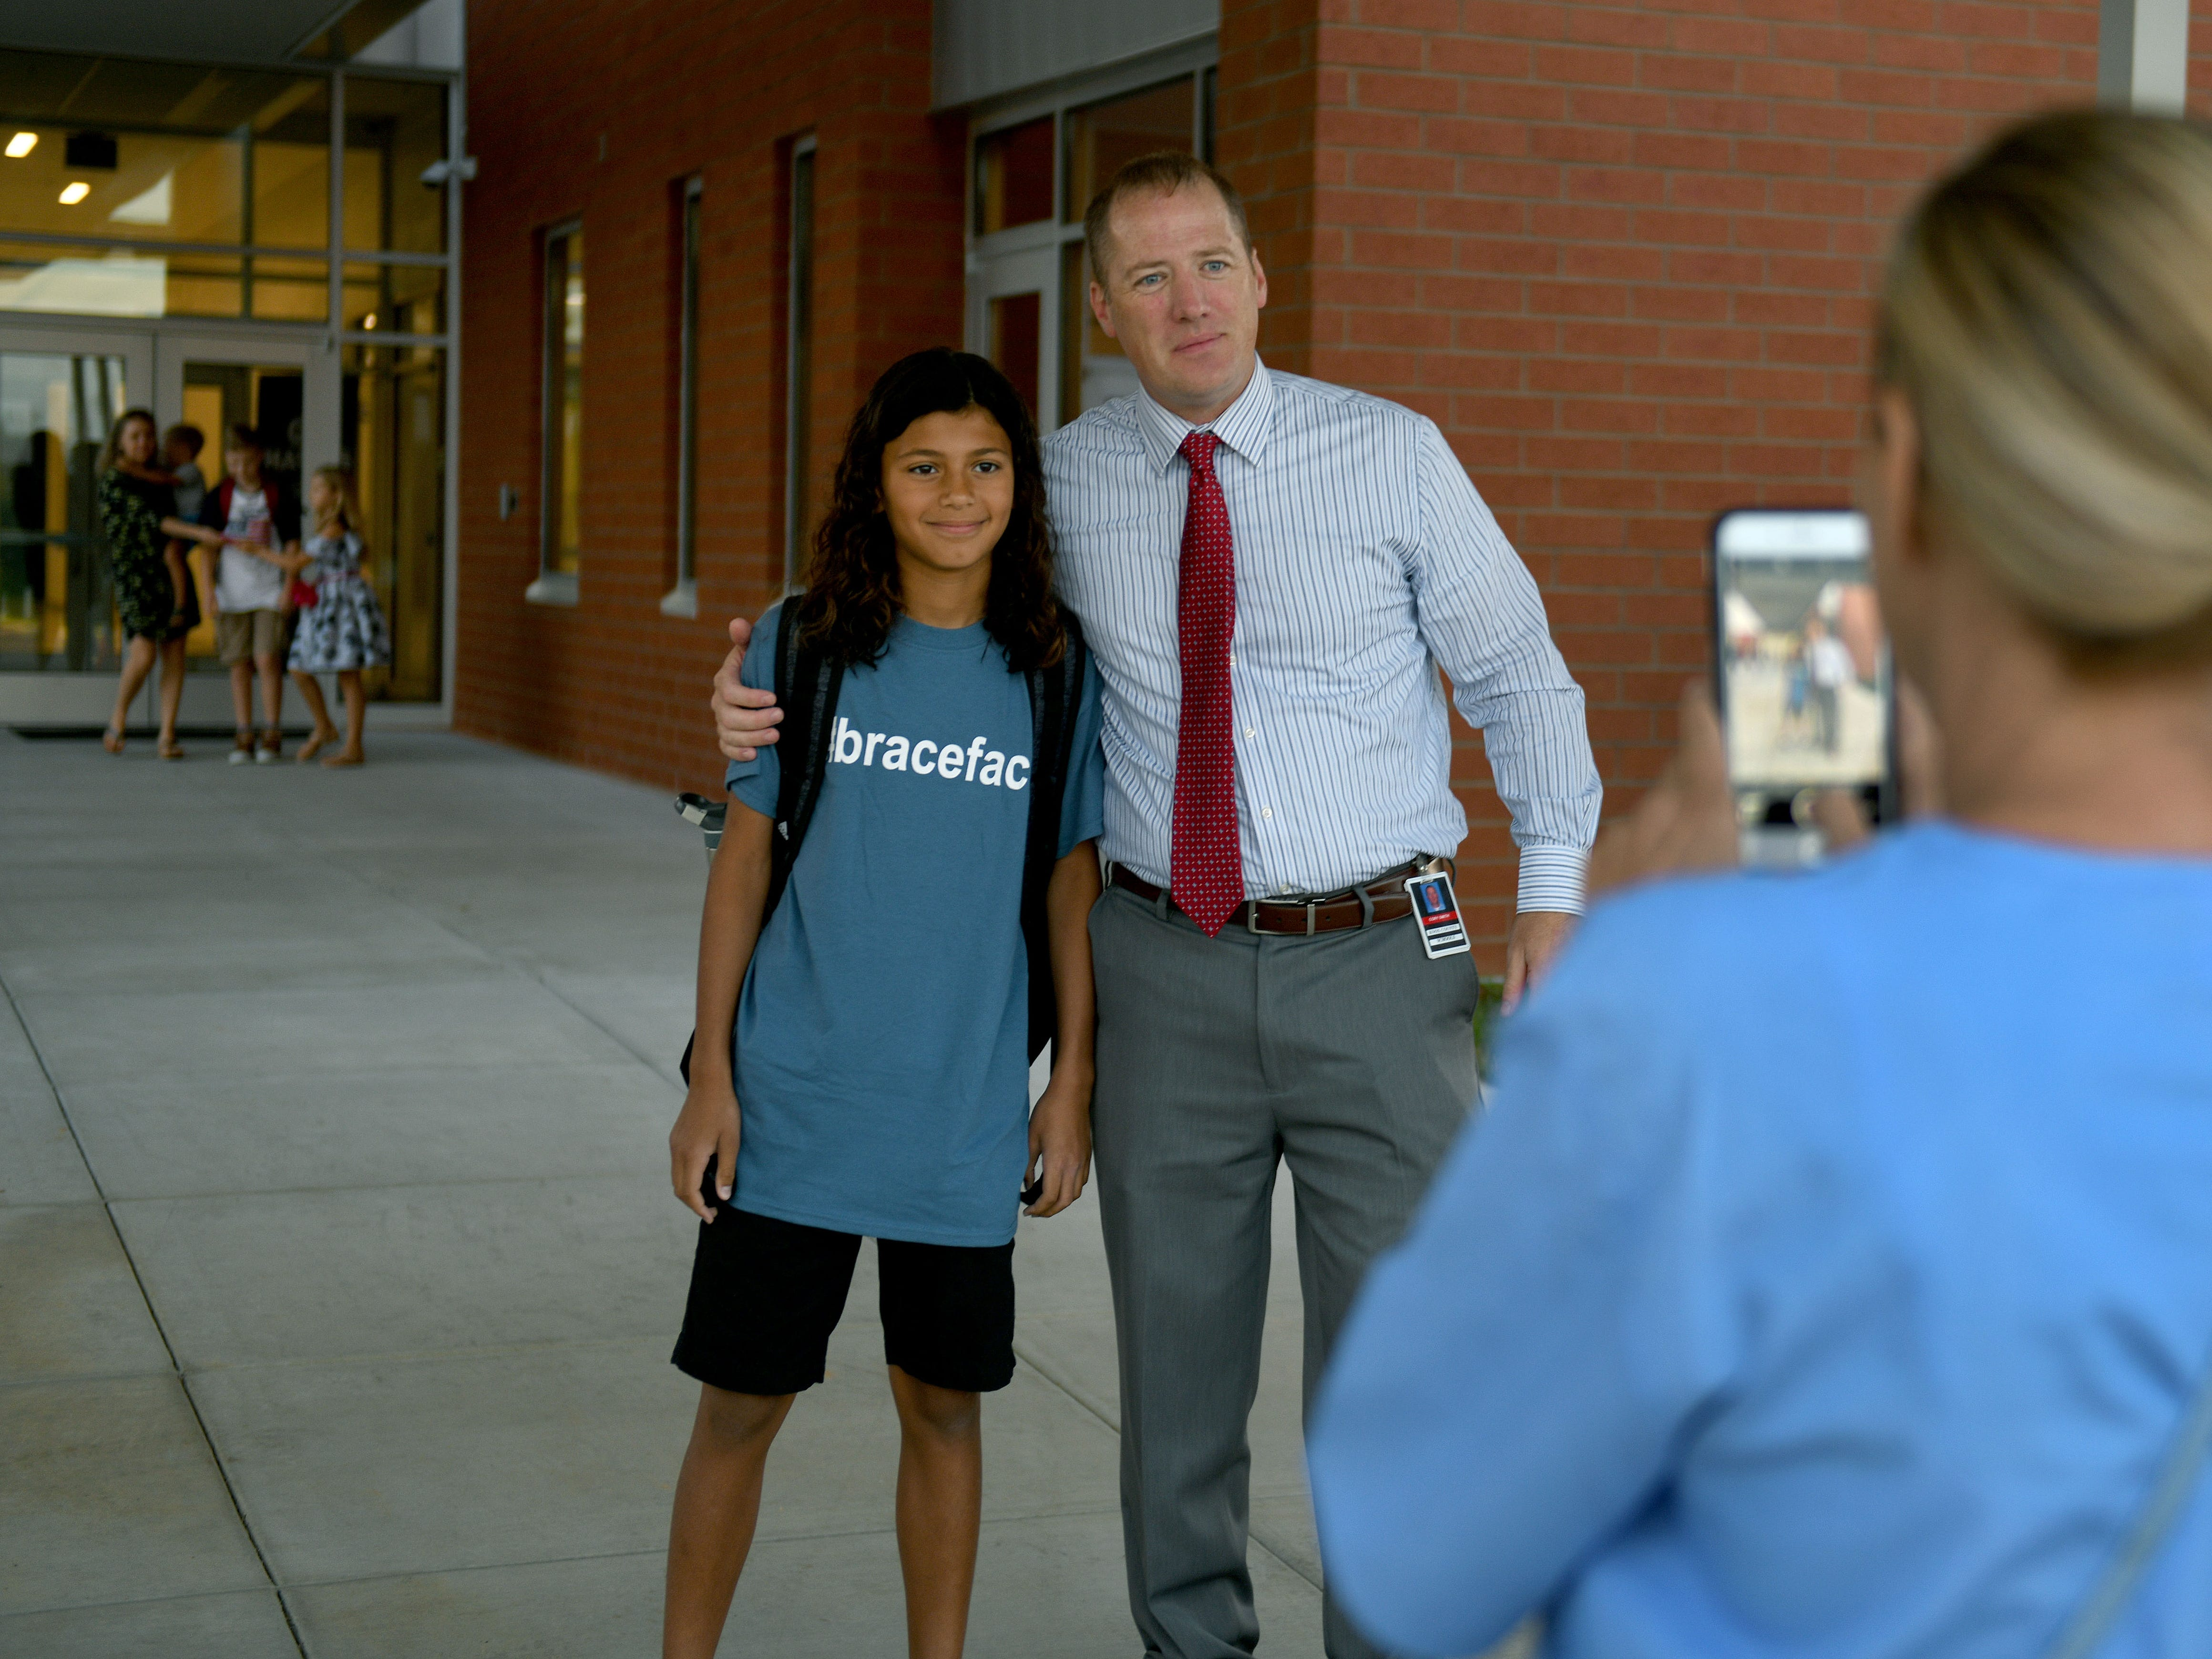 Hardin Valley Middle School Principal Cory Smith poses with Tristan Laanait, 11, while his mother Liz takes a photo at the entrance to the school Wednesday, August 8, 2018.  directed teachers and students to a smooth opening for the new school.